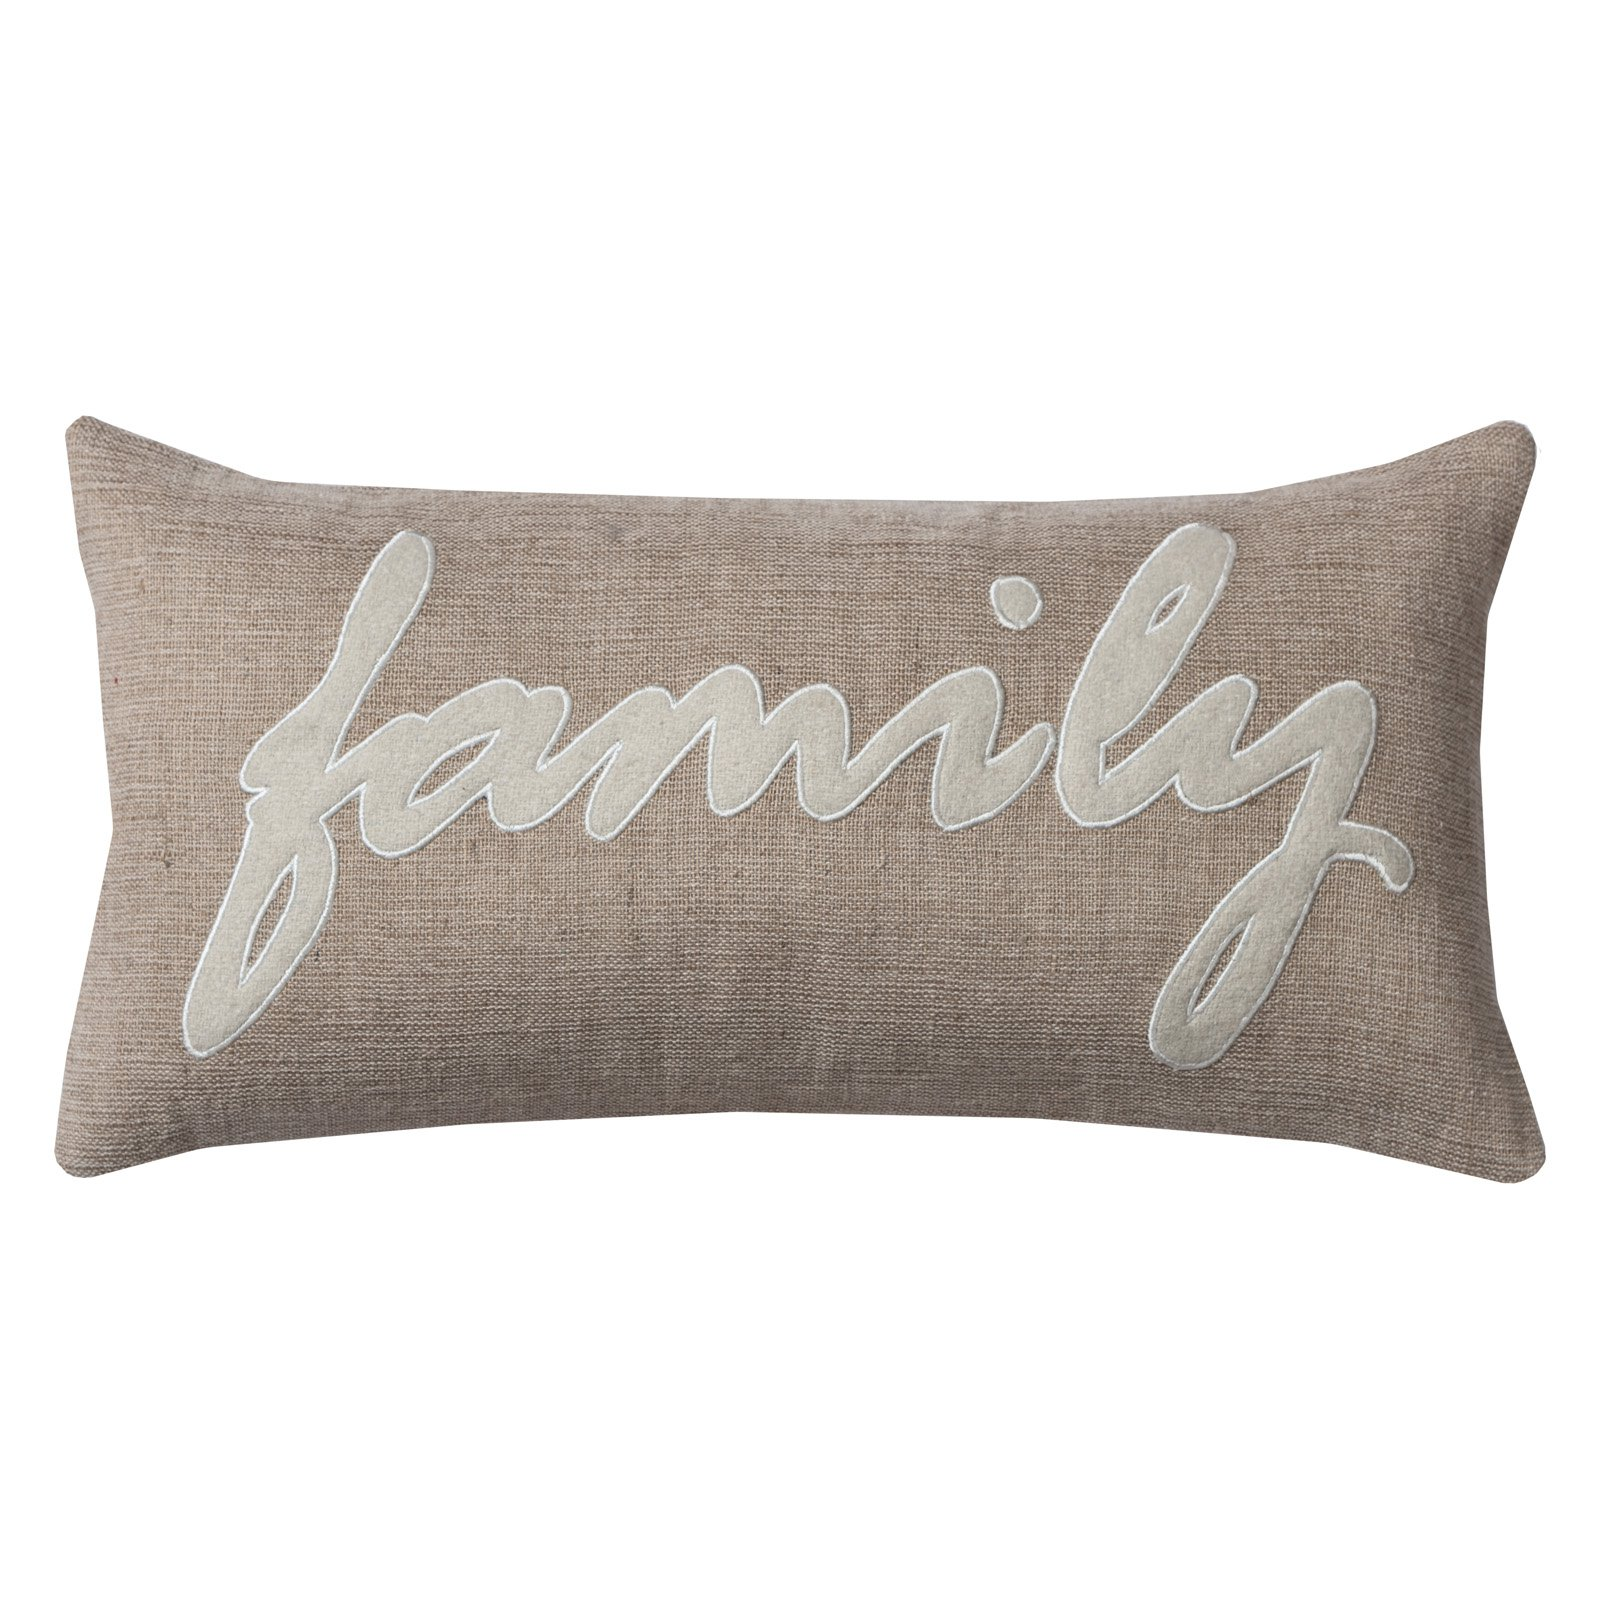 """Rizzy Home One Of A Kind Family Decorative Throw Pillow, 11"""" x 21"""""""